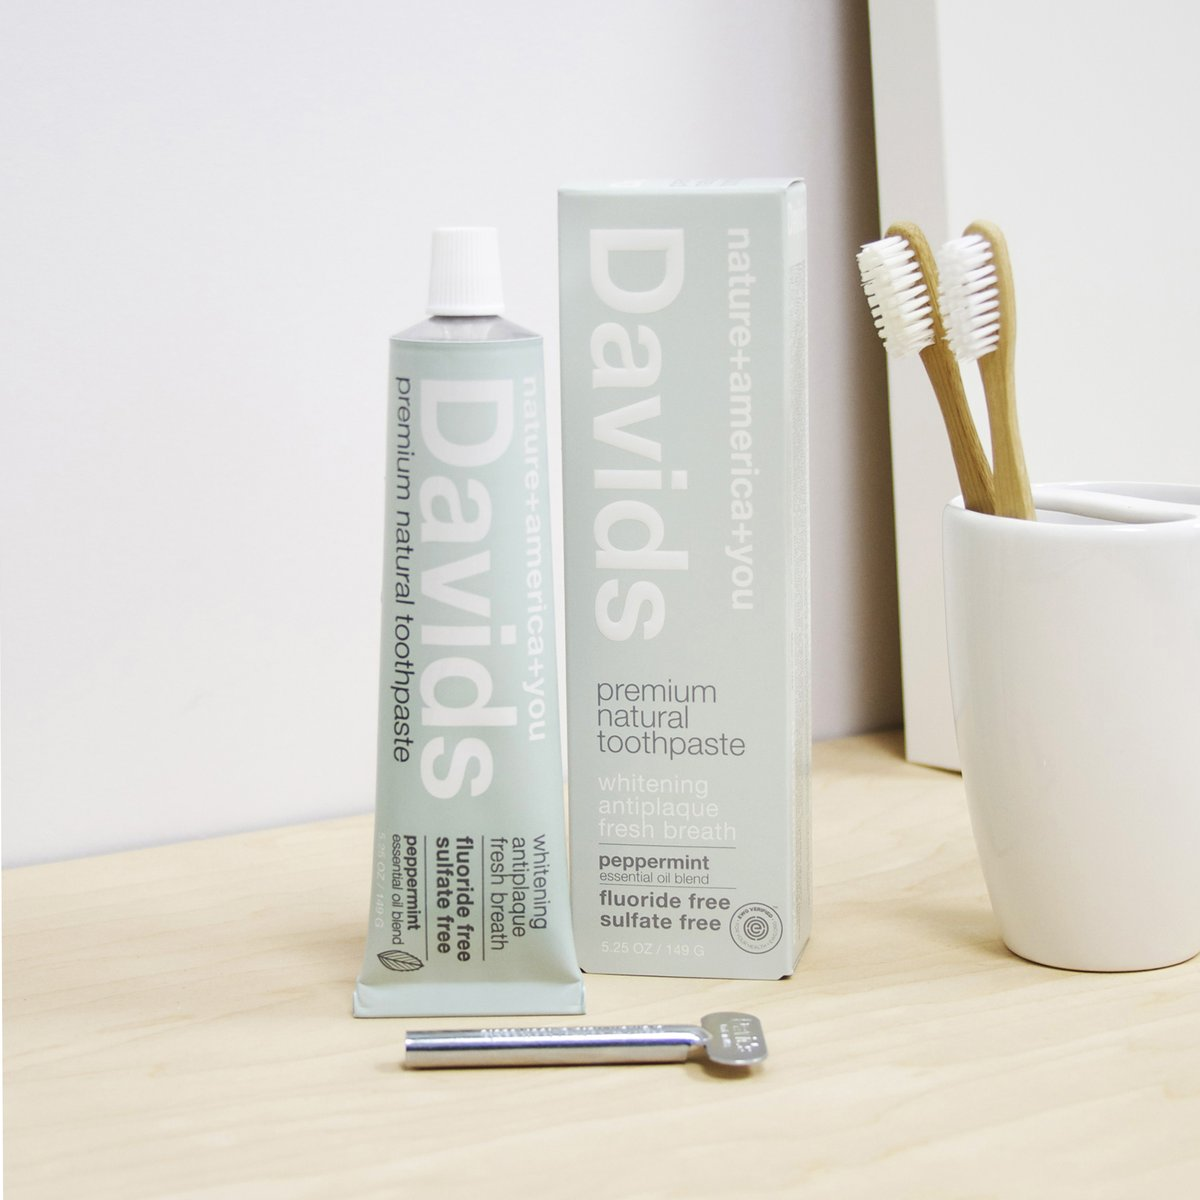 Davids - Premium Peppermint Natural Toothpaste